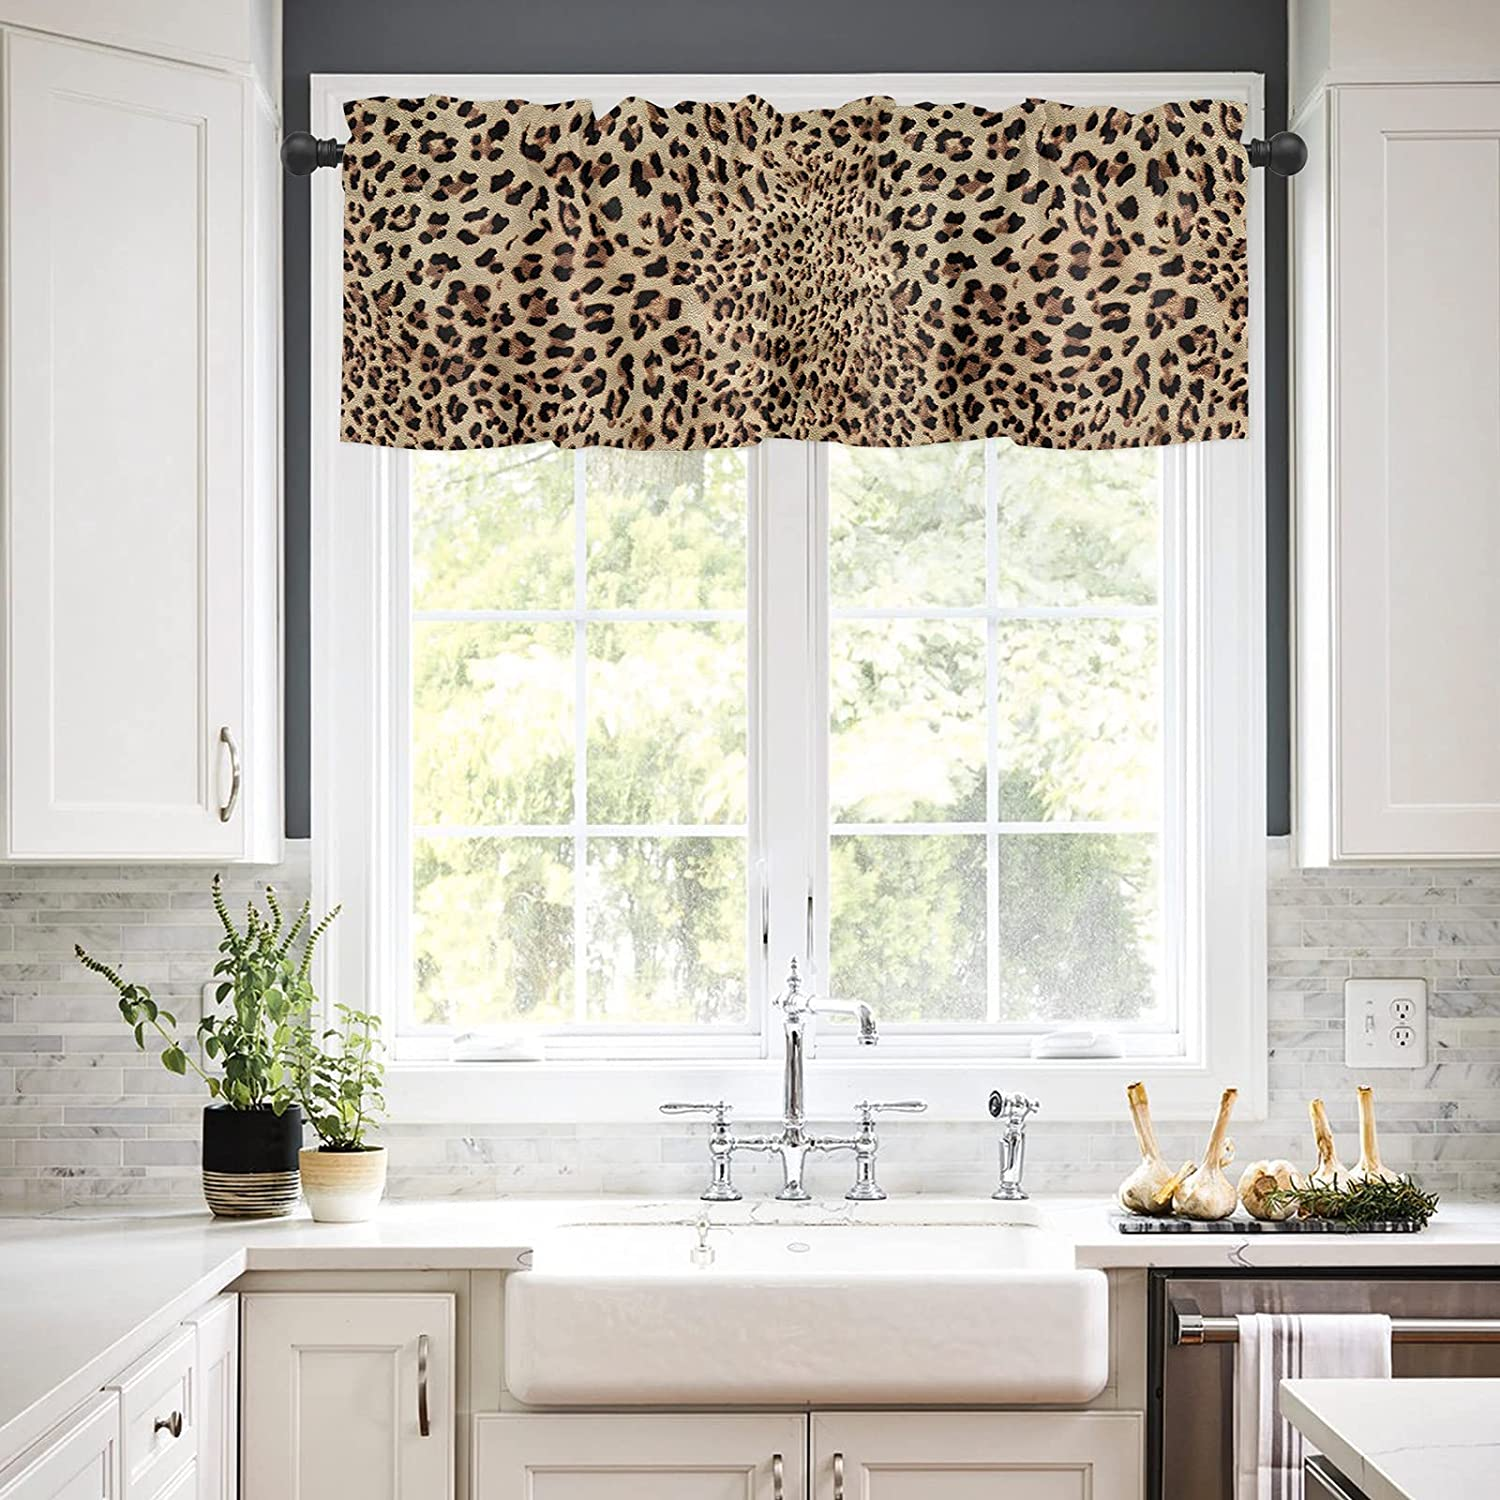 Rod Pocket Window Fashionable Valances Curtains Sexy Kitchen for online shopping Leopard Ani